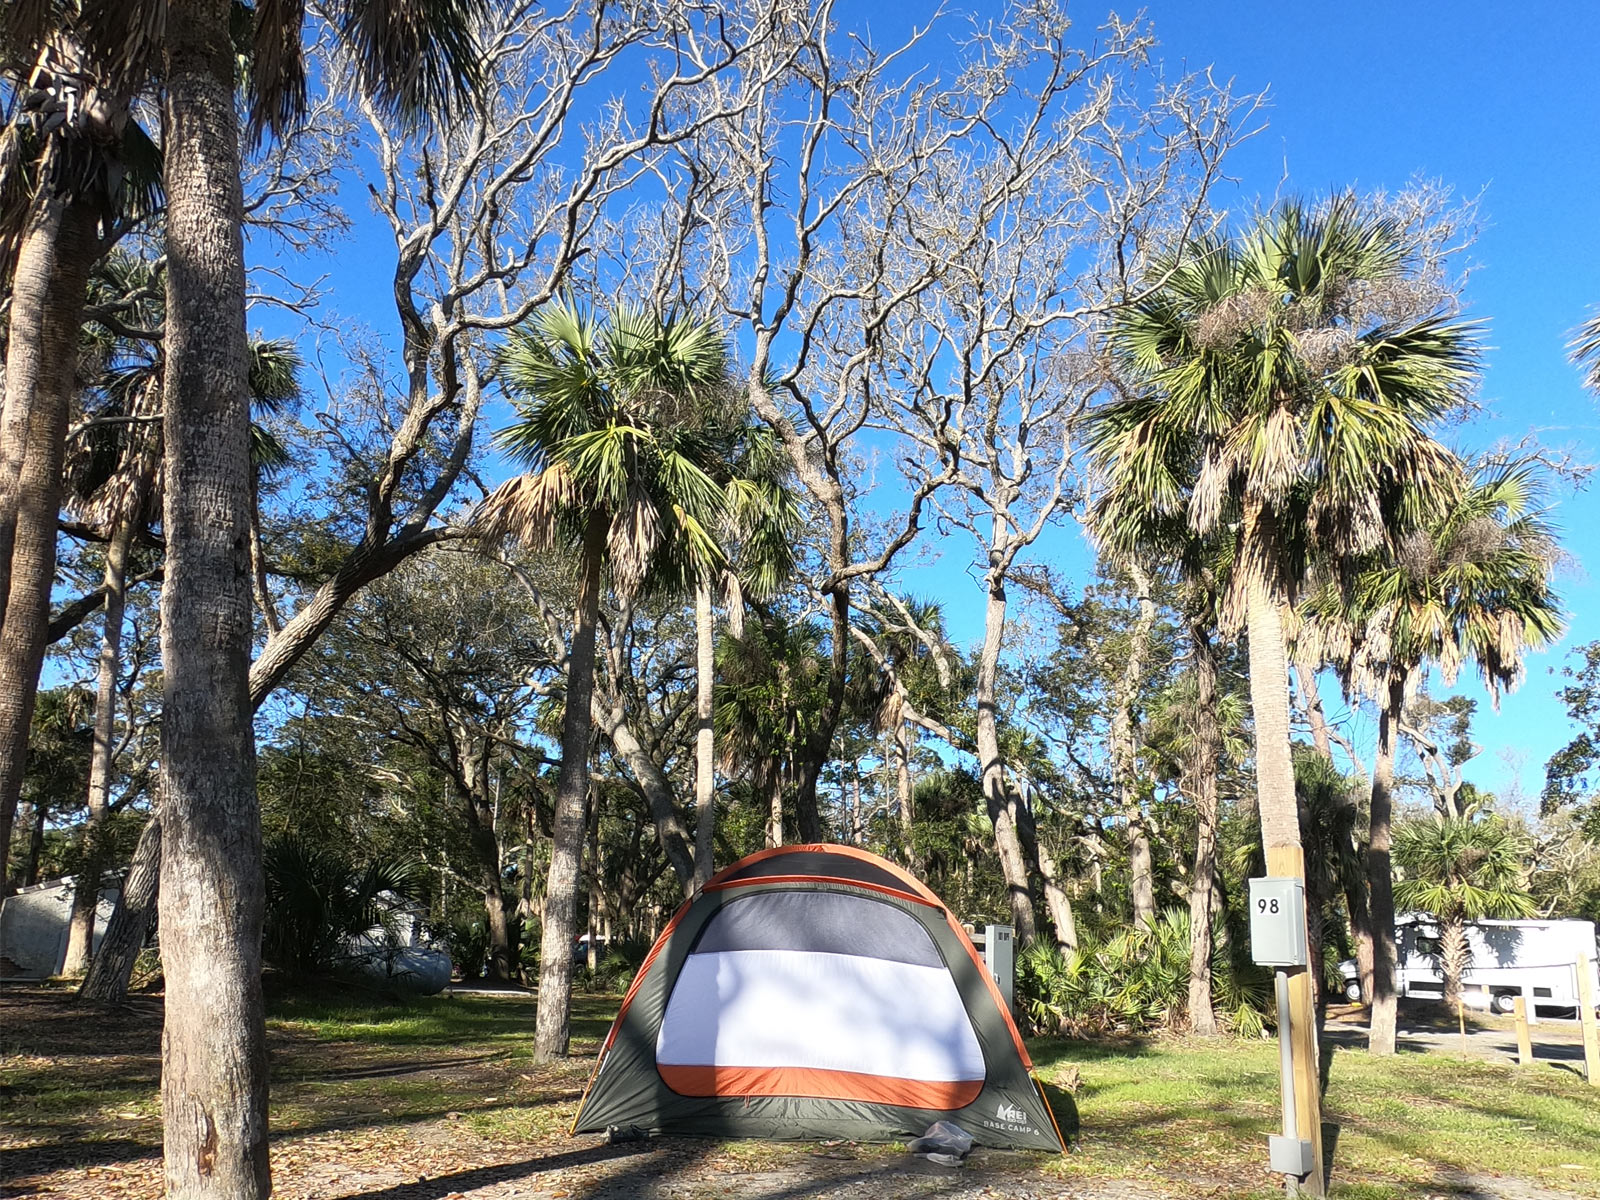 REI tent at campsite at Hunting Island State Park, South Carolina